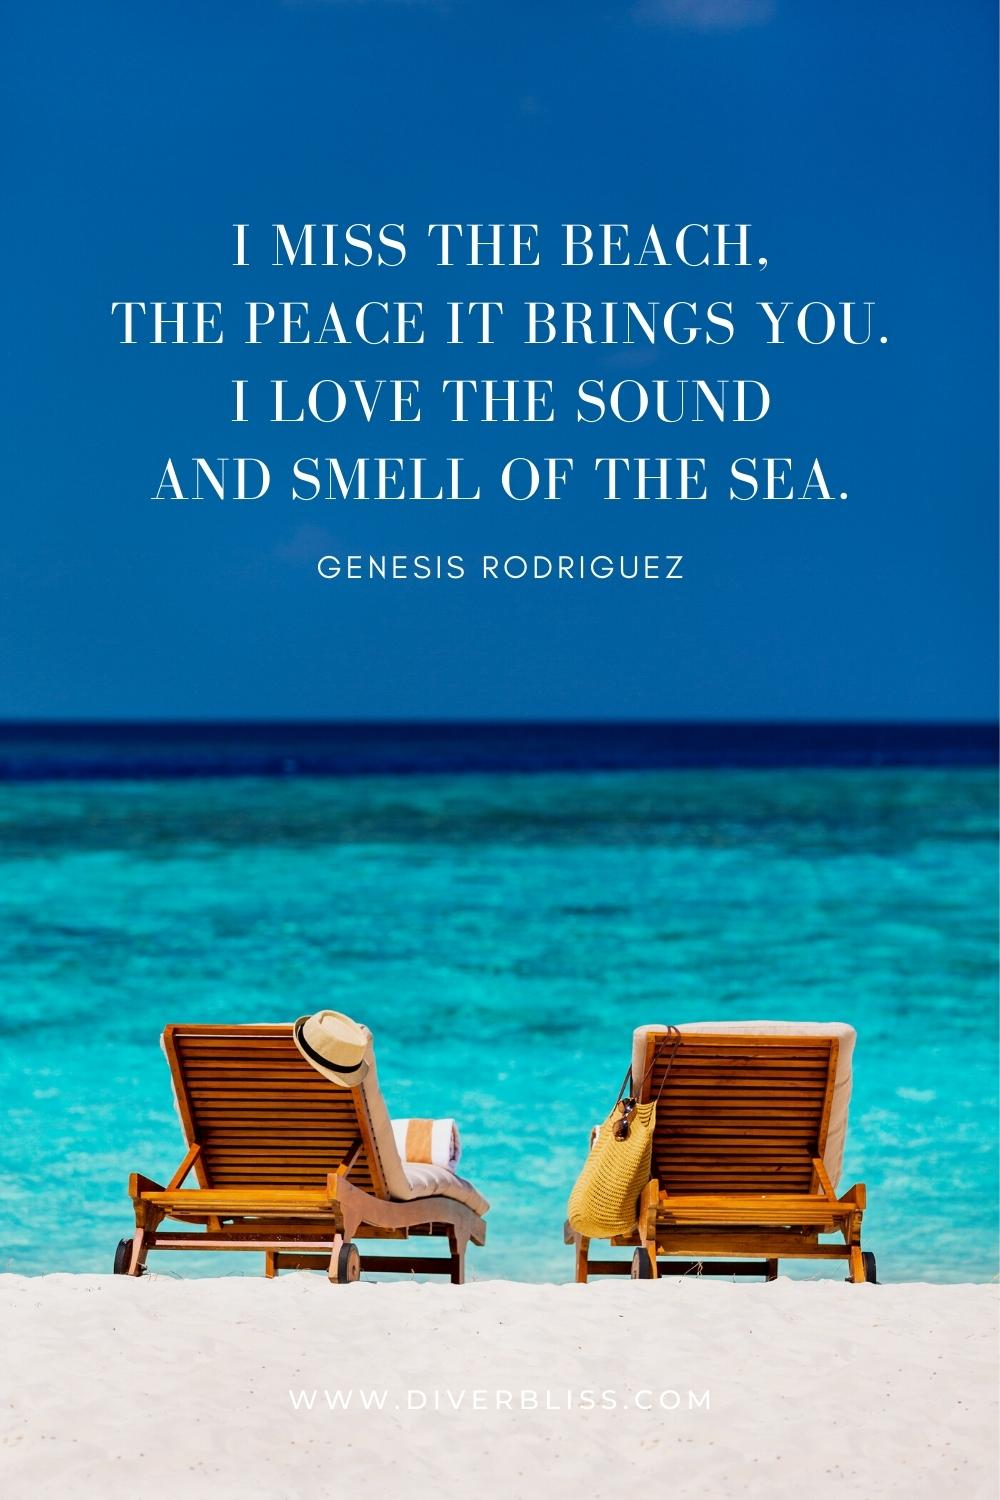 """""""I miss the beach, the peace it brings you. I love the sound and smell of the sea."""" —Genesis Rodriguez"""